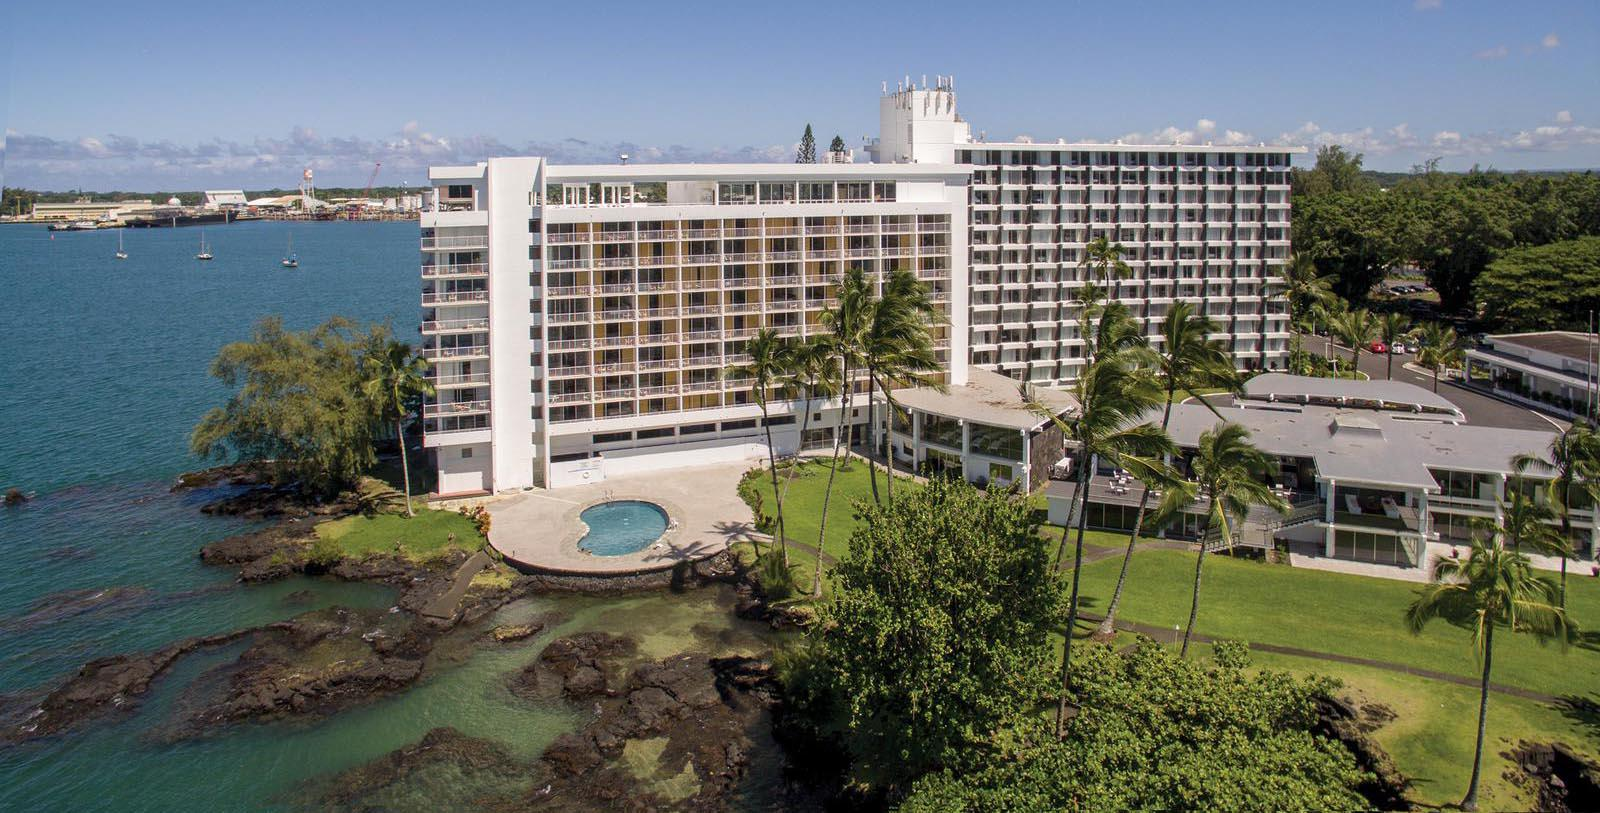 Exterior daytime aerial view of the Grand Naniloa Hotel Hilo, a DoubleTree by Hilton in Hawaii.